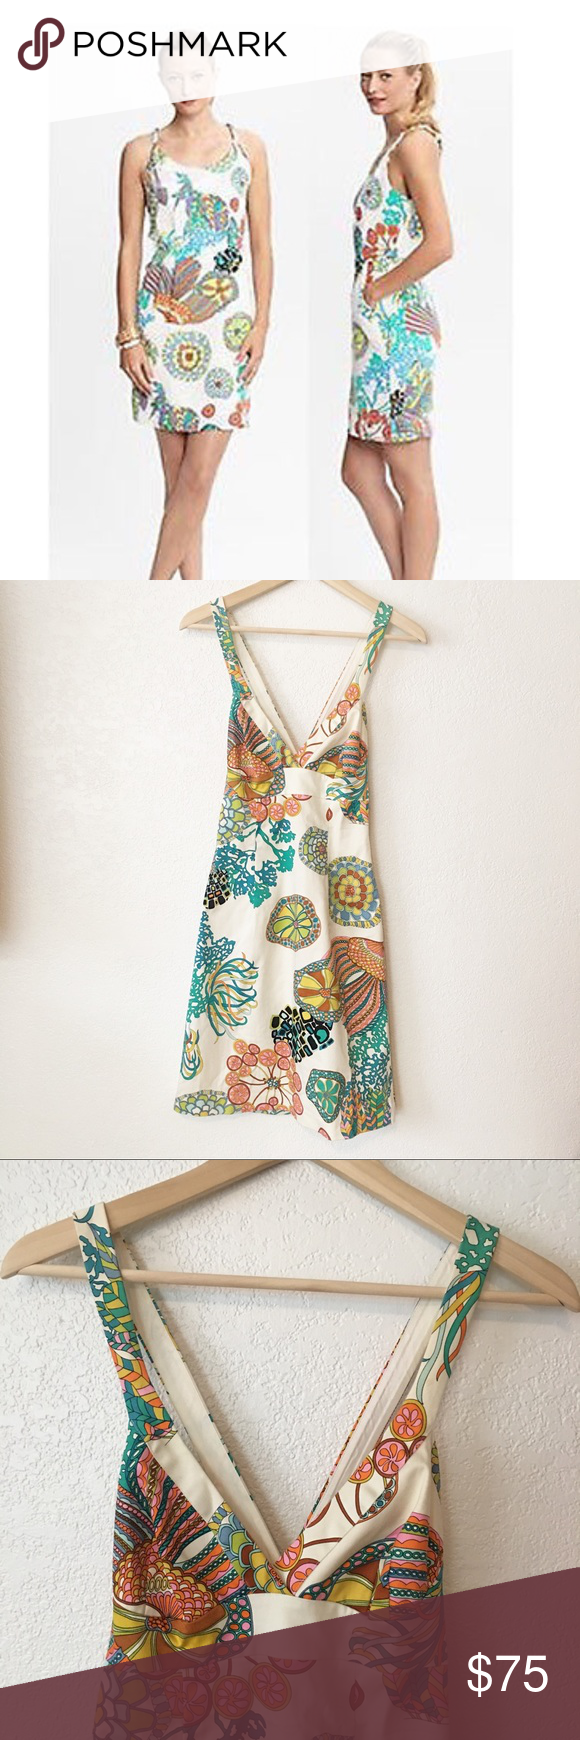 fec4dea598439 TRINA TURK | Colorful Beach Floral Dress Excellent used condition with no  flaws. Crossed straps